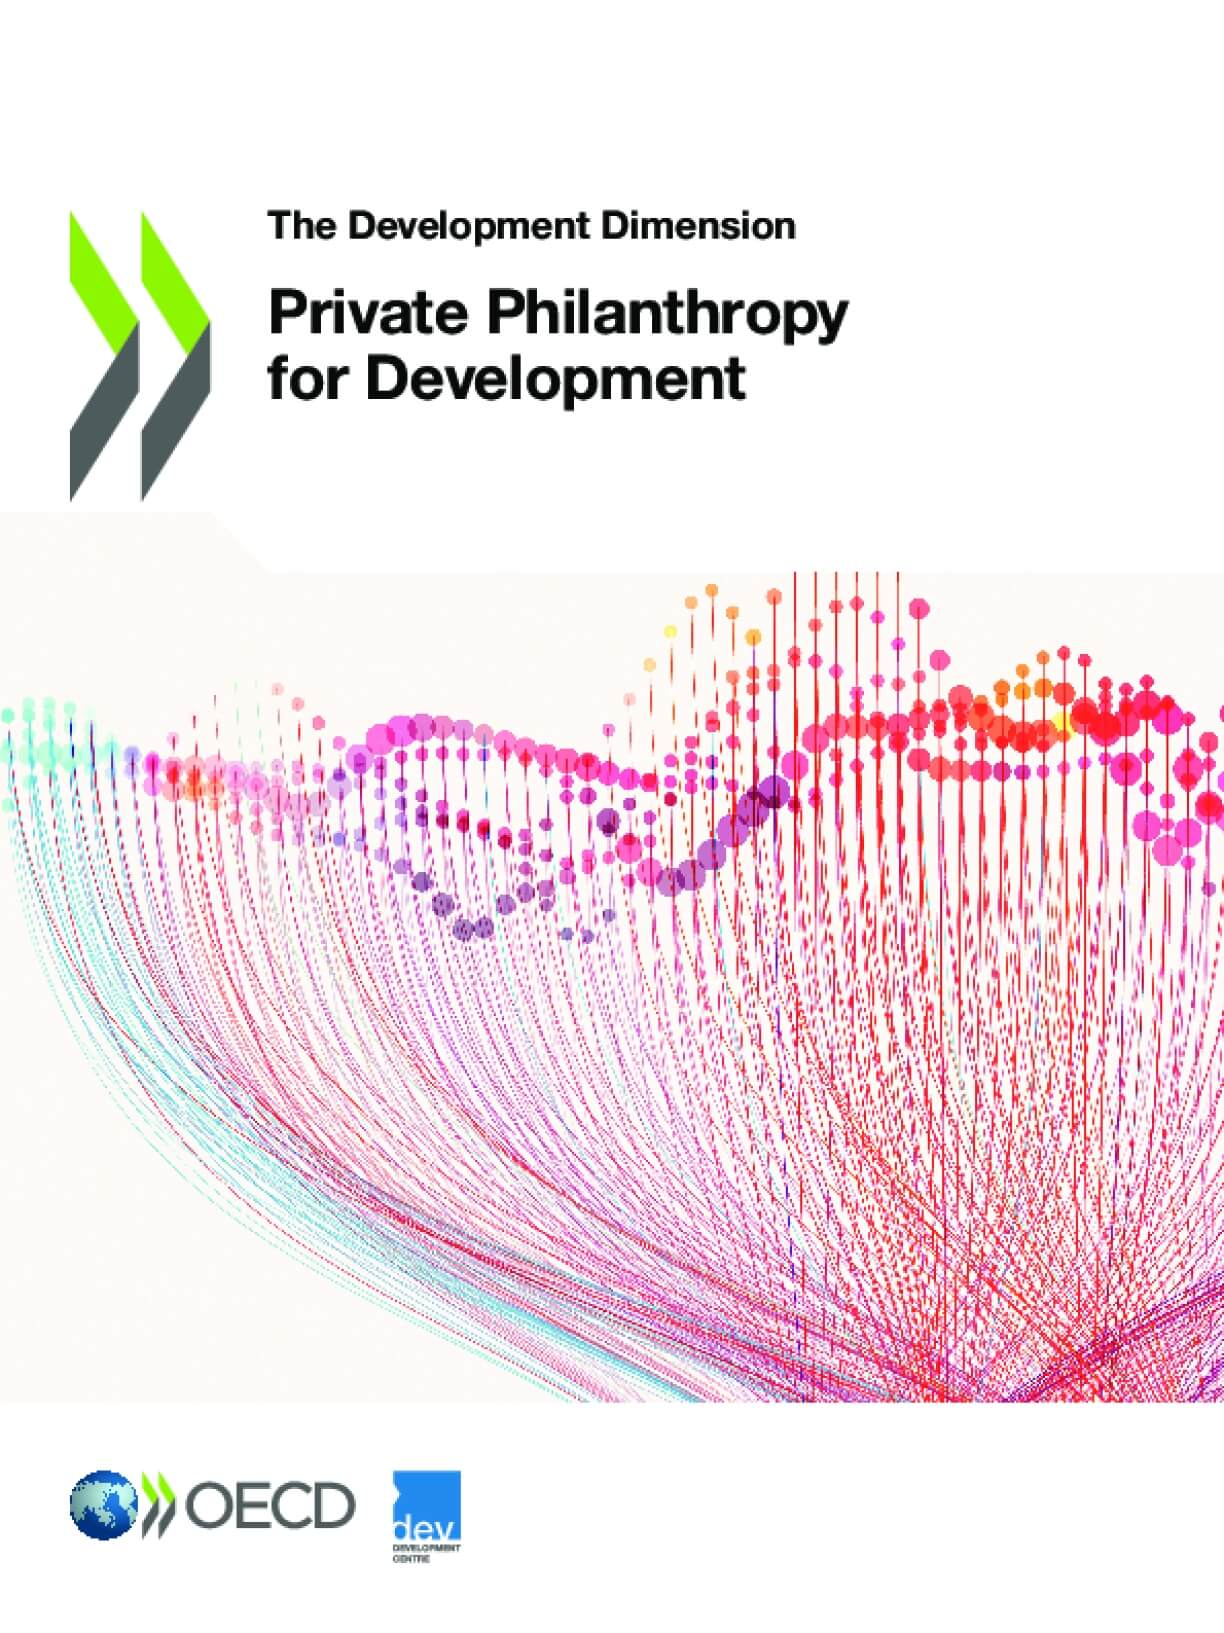 OECD 2018 Private Philanthropy for Development